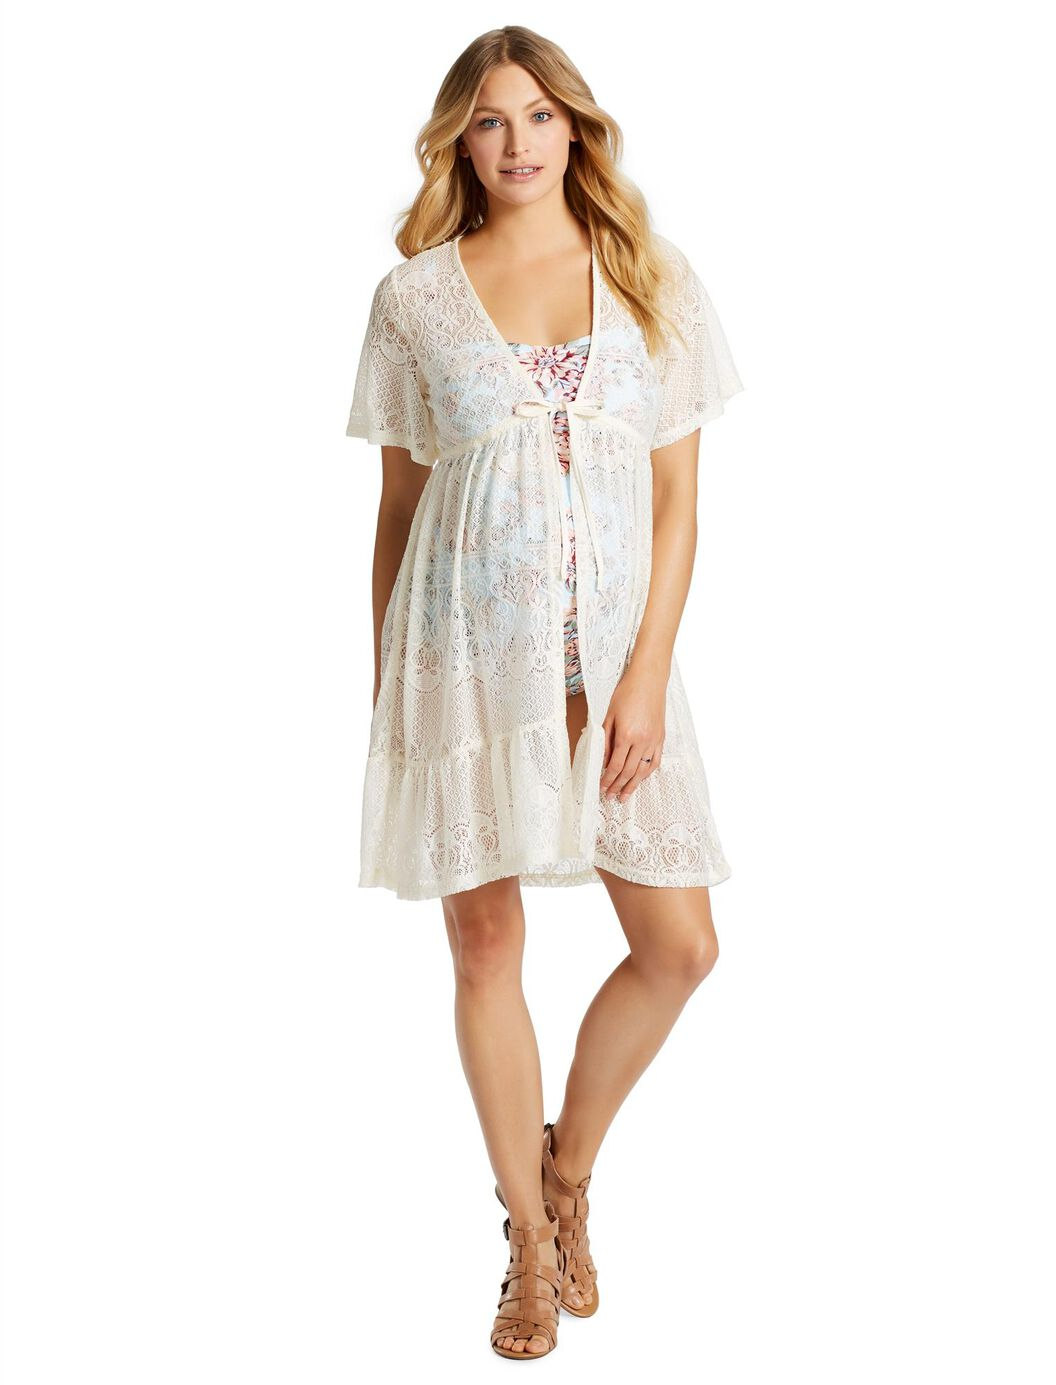 Jessica Simpson Crochet Detail Maternity Swim Cover-up at Motherhood Maternity in Victor, NY | Tuggl